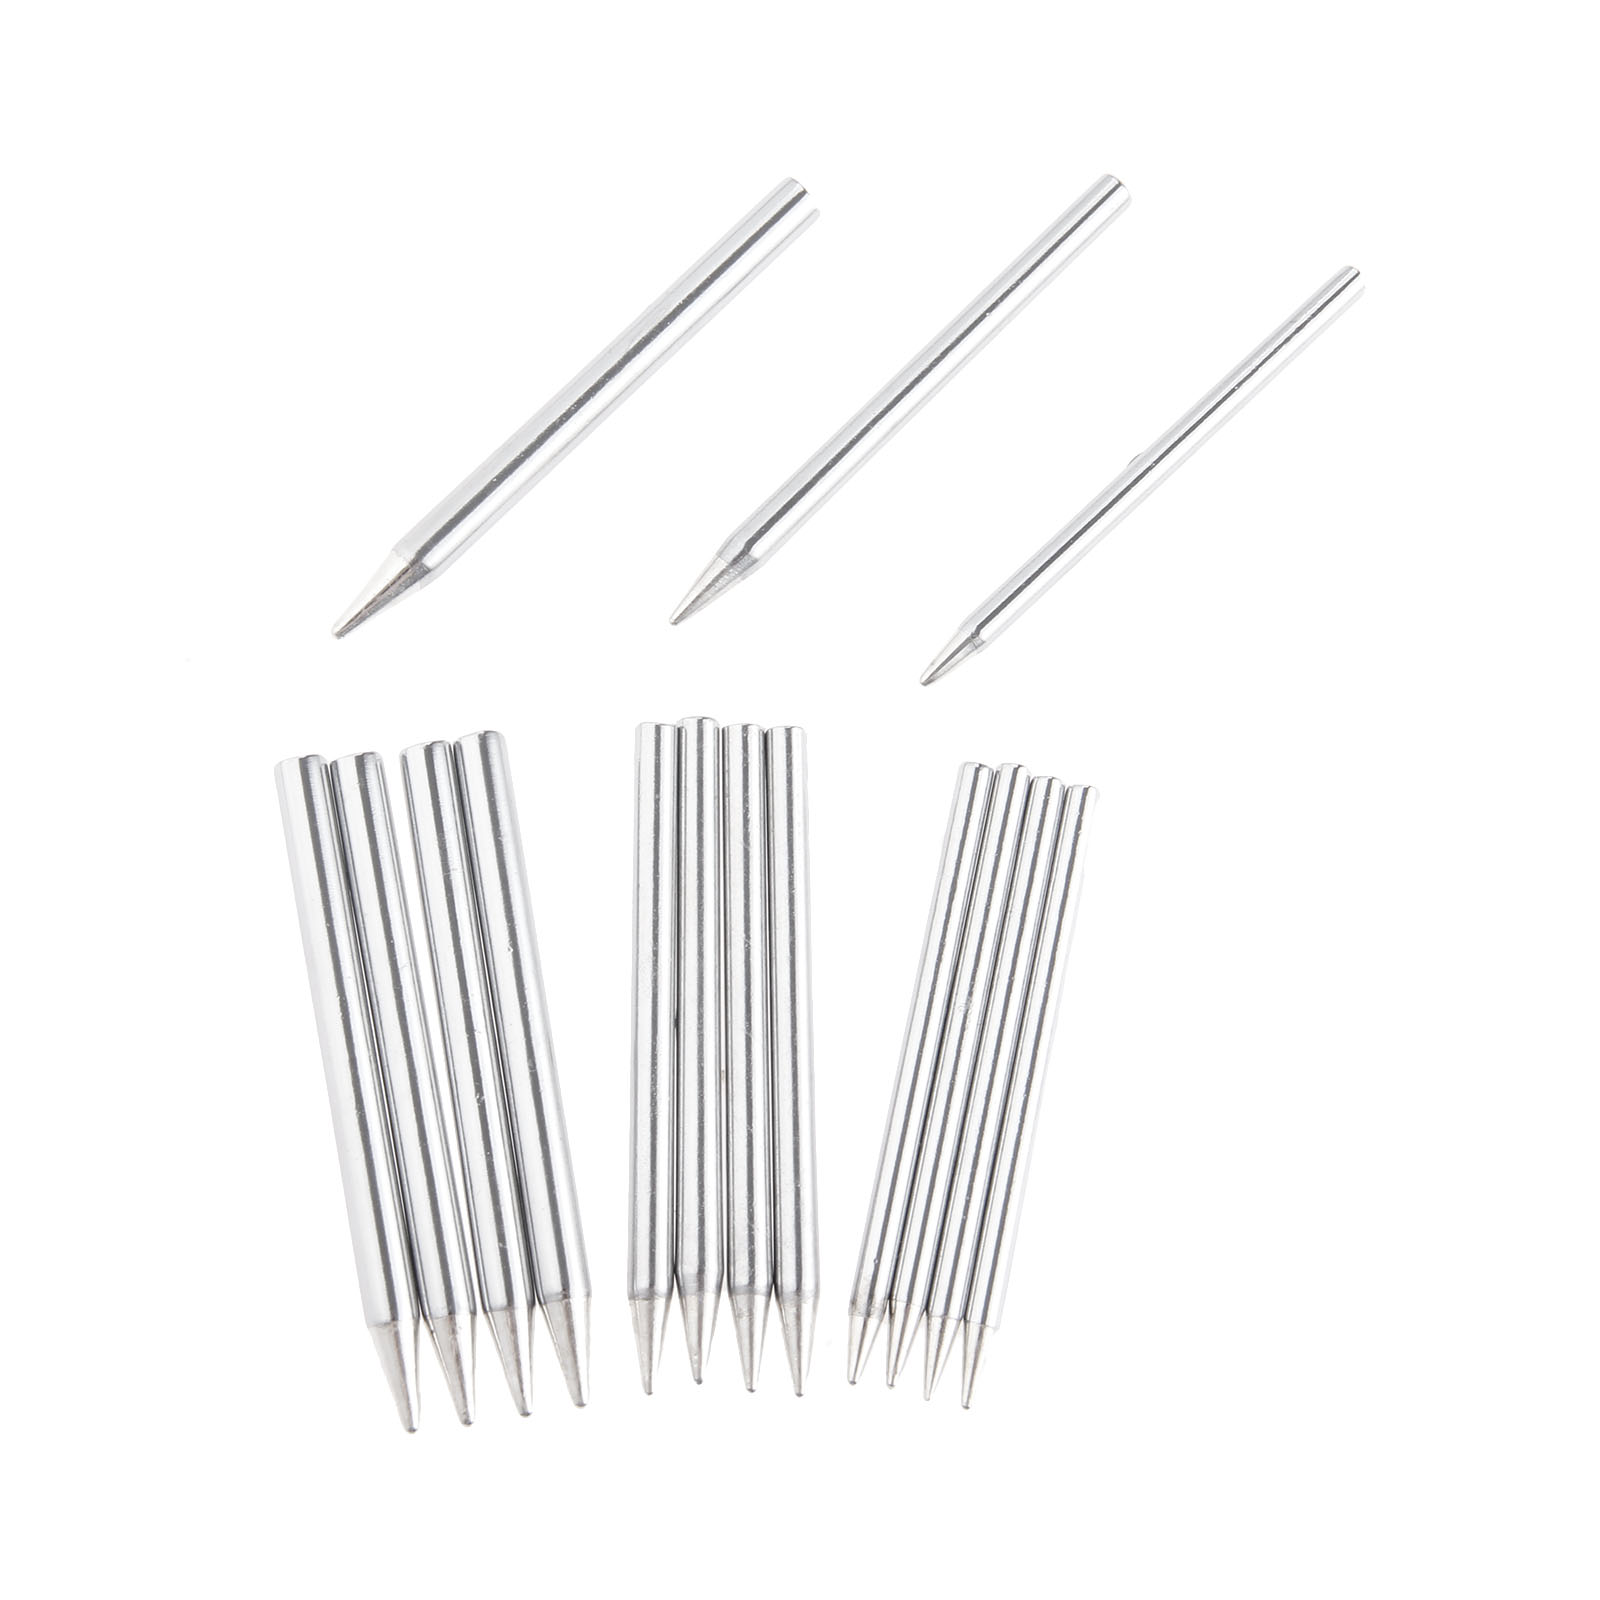 DRELD 5Pcs/Set Soldering Iron Tips Lead-Free Solder Tips 30W/40W/60W Replacement Welding & Soldering Supplies Welding Tools